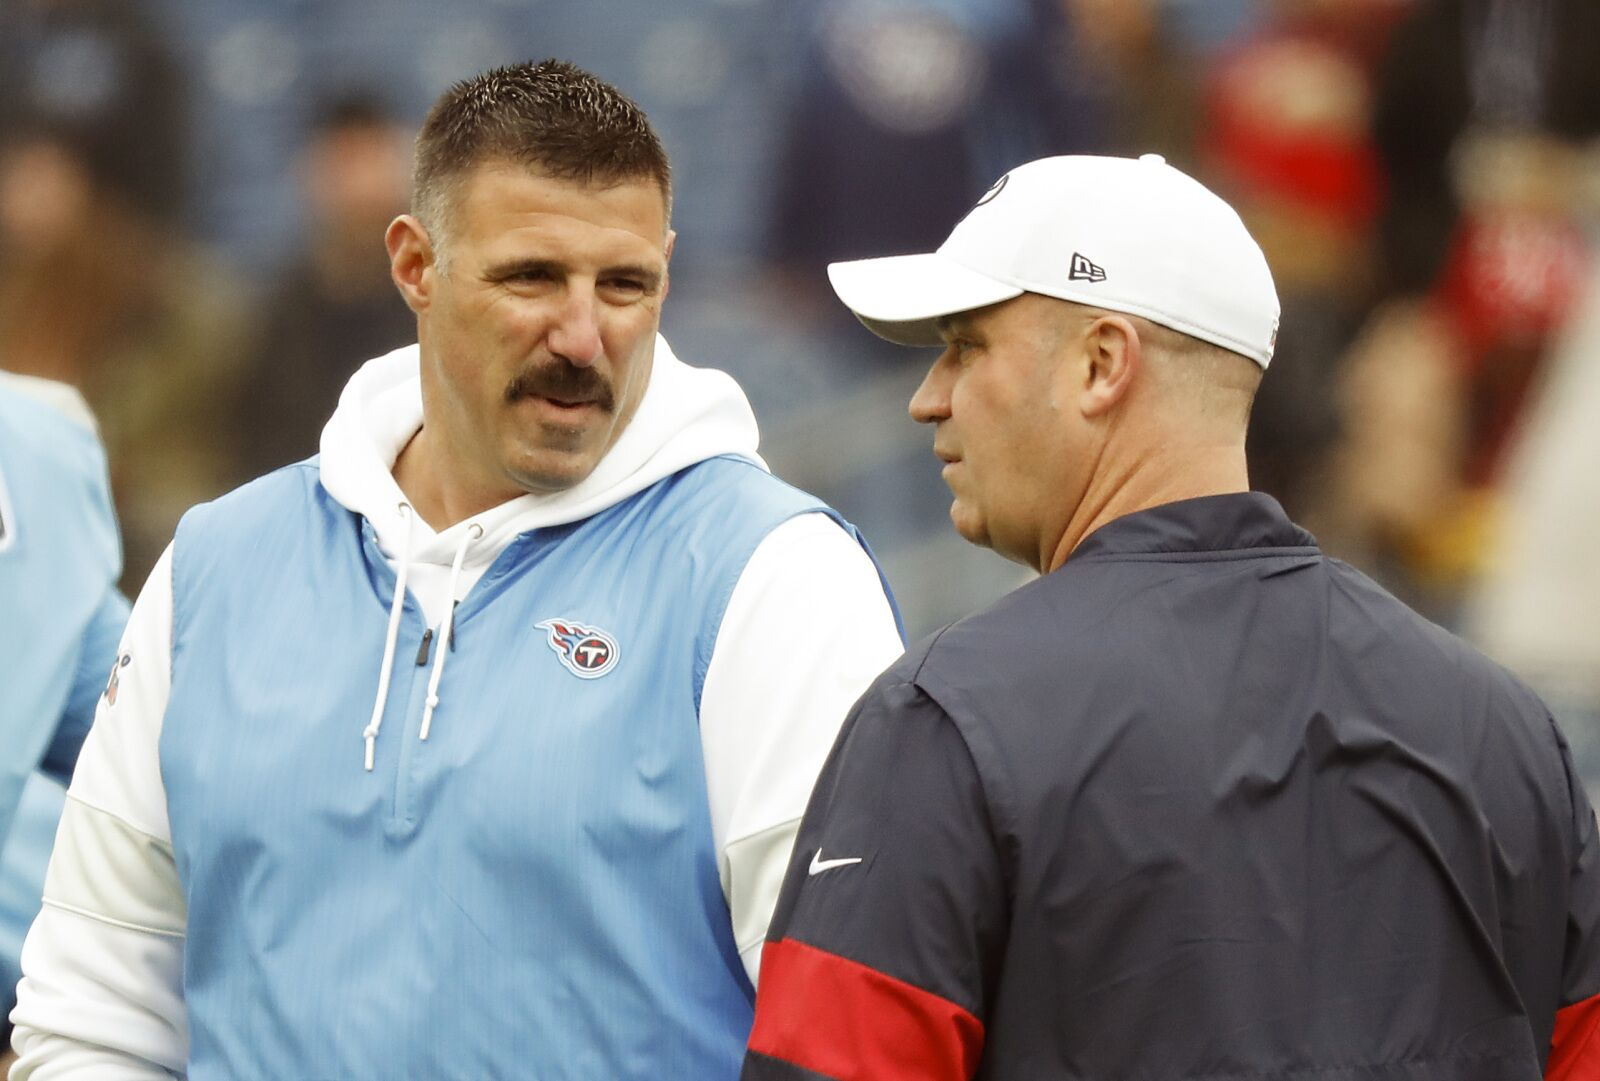 Should the Houston Texans kept Mike Vrabel over Bill O'Brien?